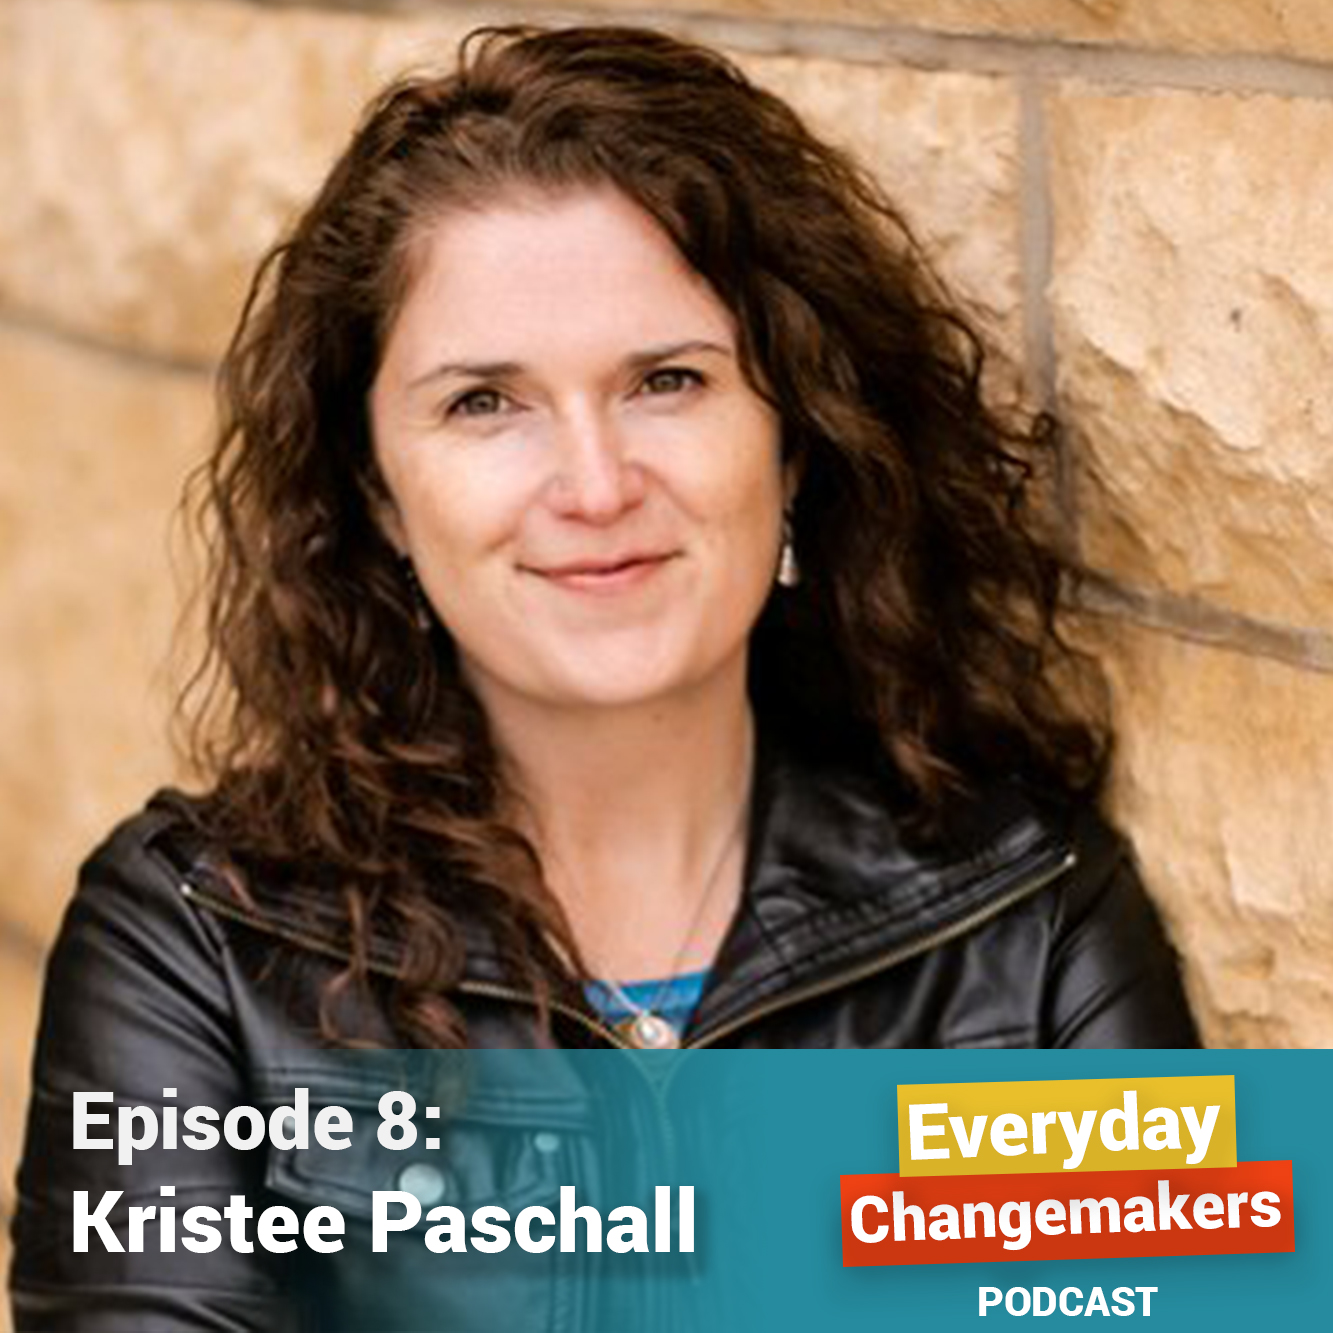 On Giving Birth to a Big Vision and Midwifing the Leadership of Others - Kristee Paschall is the National Director of Win Justice, a groundbreaking coalition to win key elections in battleground states in 2018. She grew up with missionary parents who taught her to take big risks and to love generously. As an organizer, she's on a mission to radically change our democracy. Our conversation explores how Kristee calls on her wisdom as a mother, and as an informal midwife, to bring out the power we each have inside of us to accomplish things we never thought possible.  Bonus: You can download the guide, Midwife To Your Dreams, HERE.